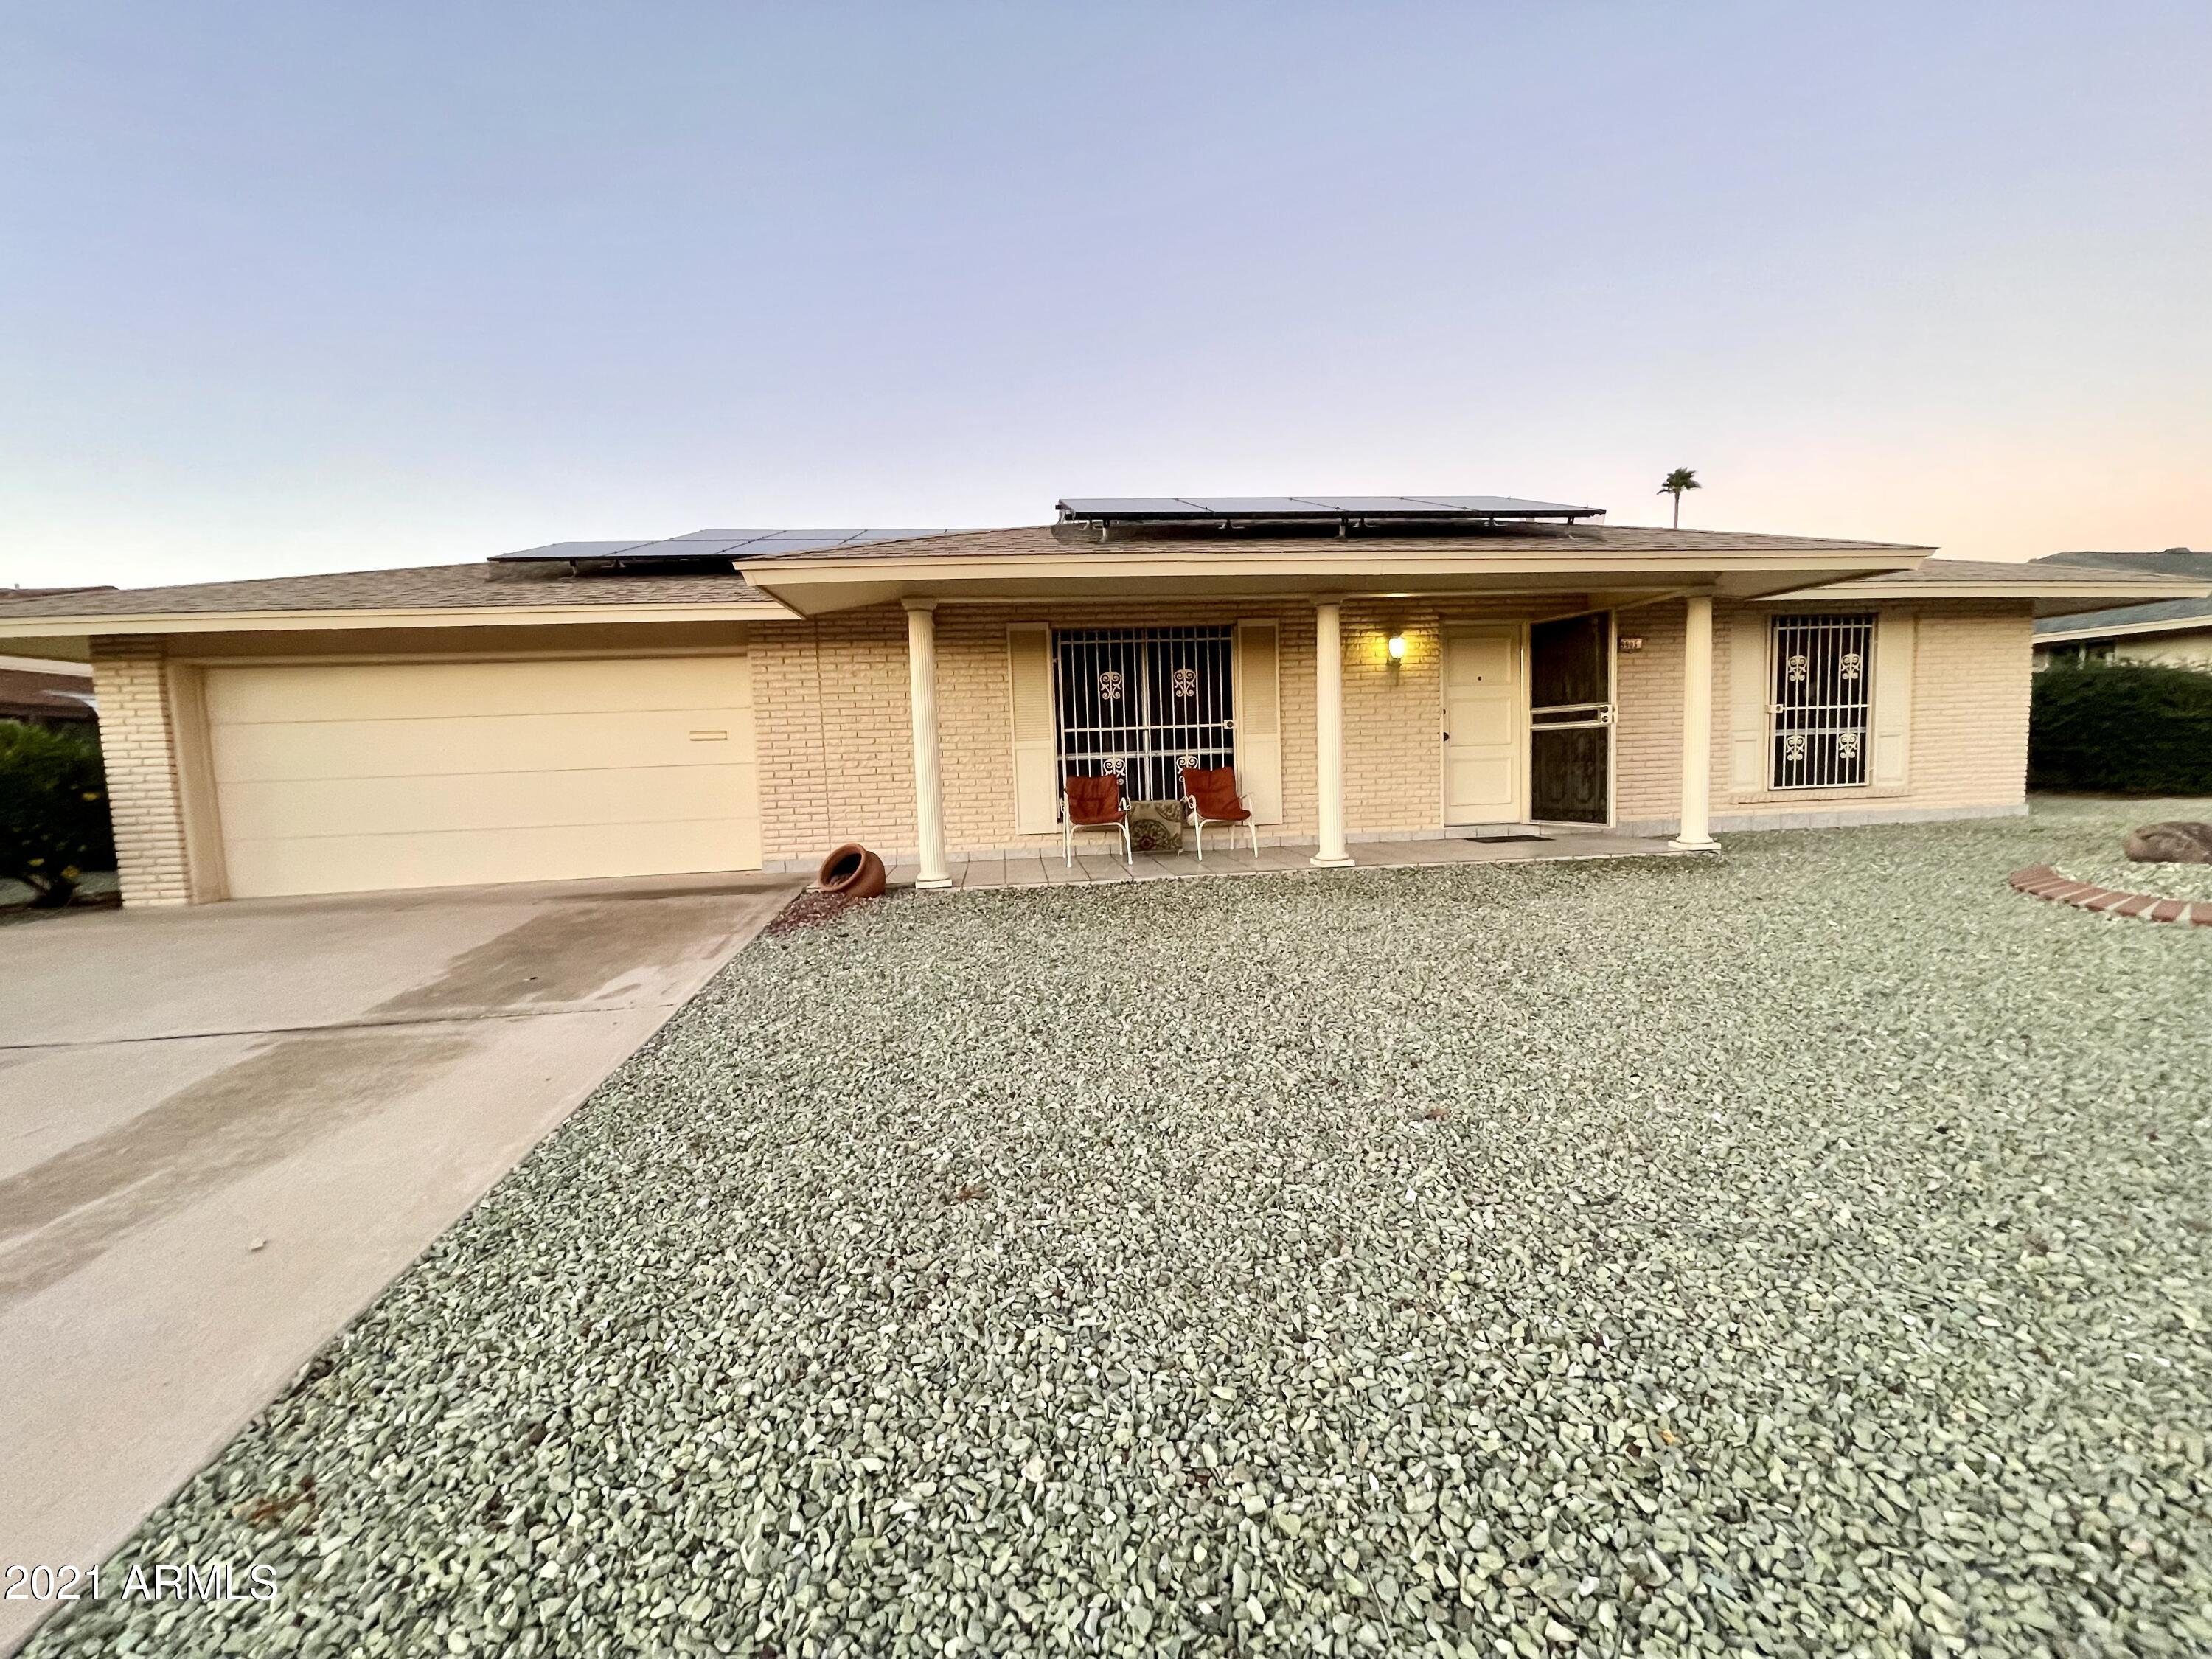 9903 W Kingswood Circle, Sun City AZ 85351 - Photo 1